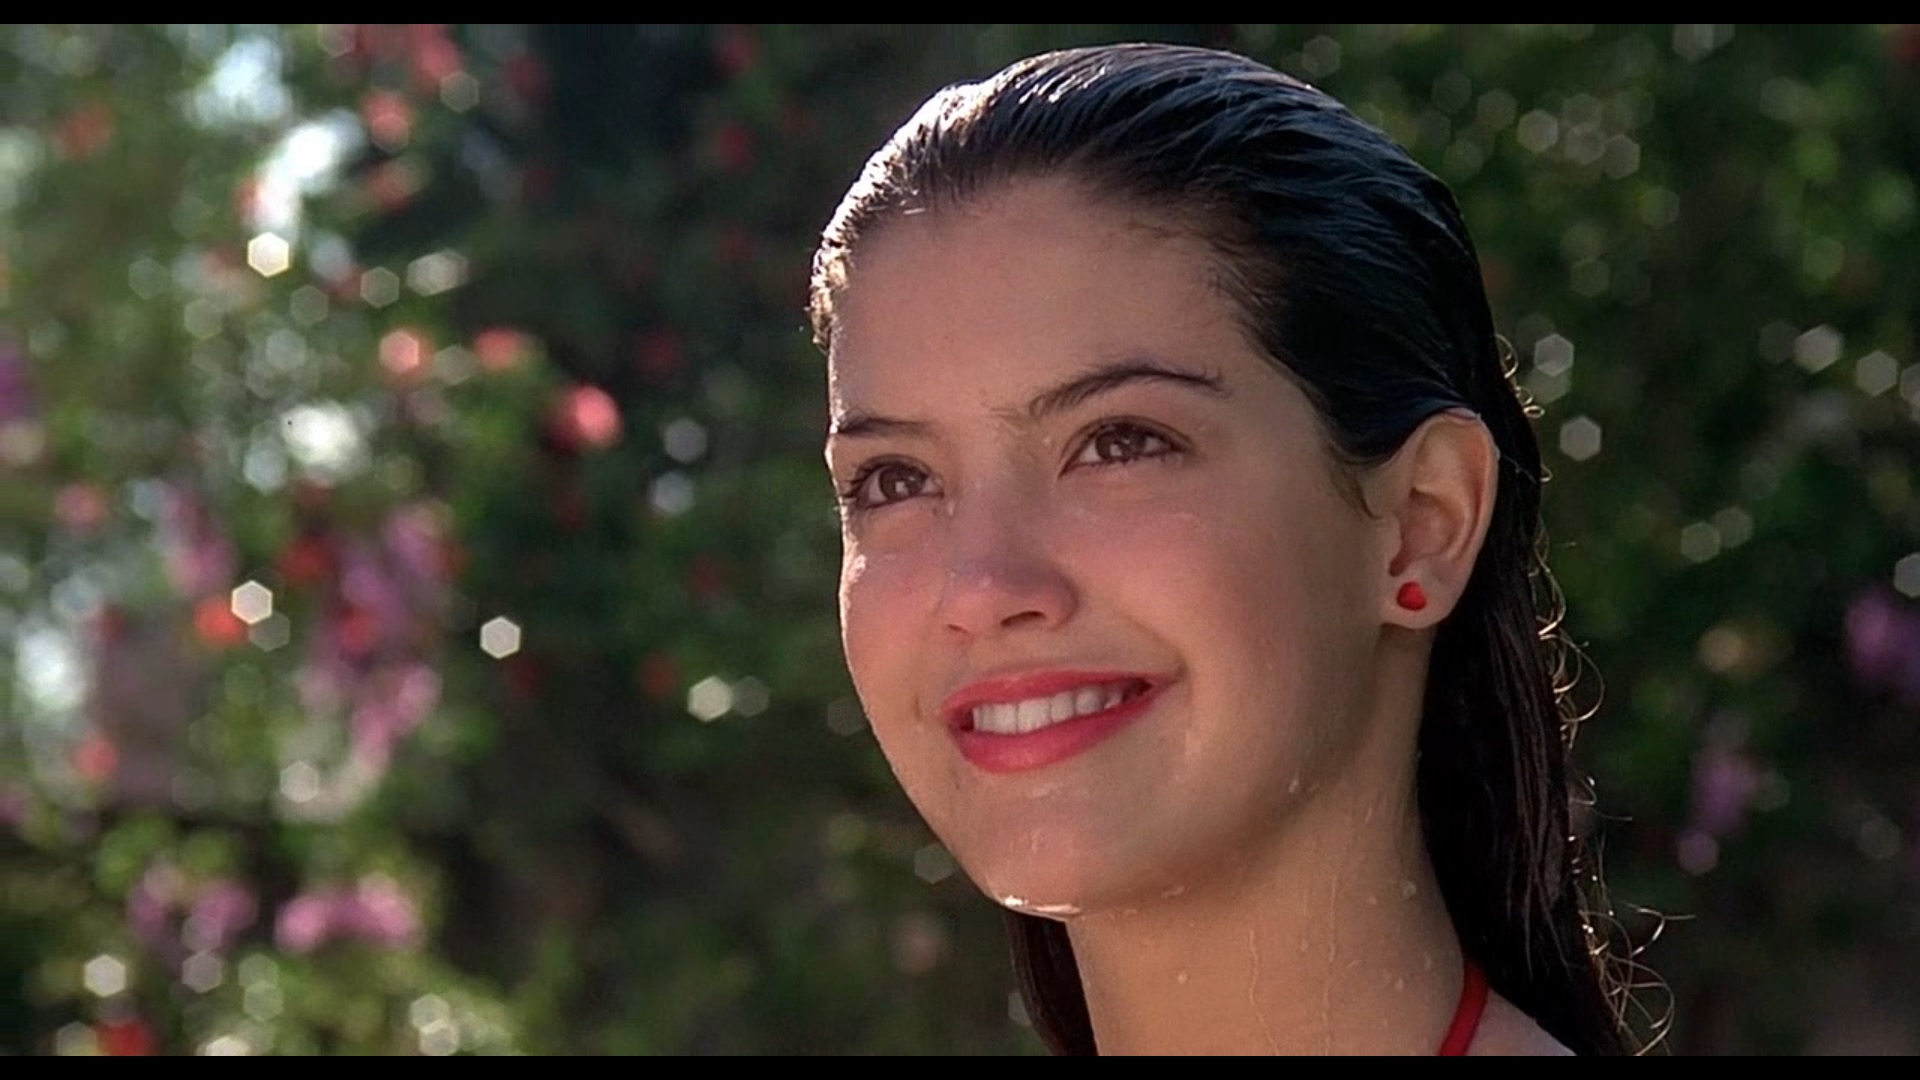 1920x1080 - Phoebe Cates Wallpapers 20